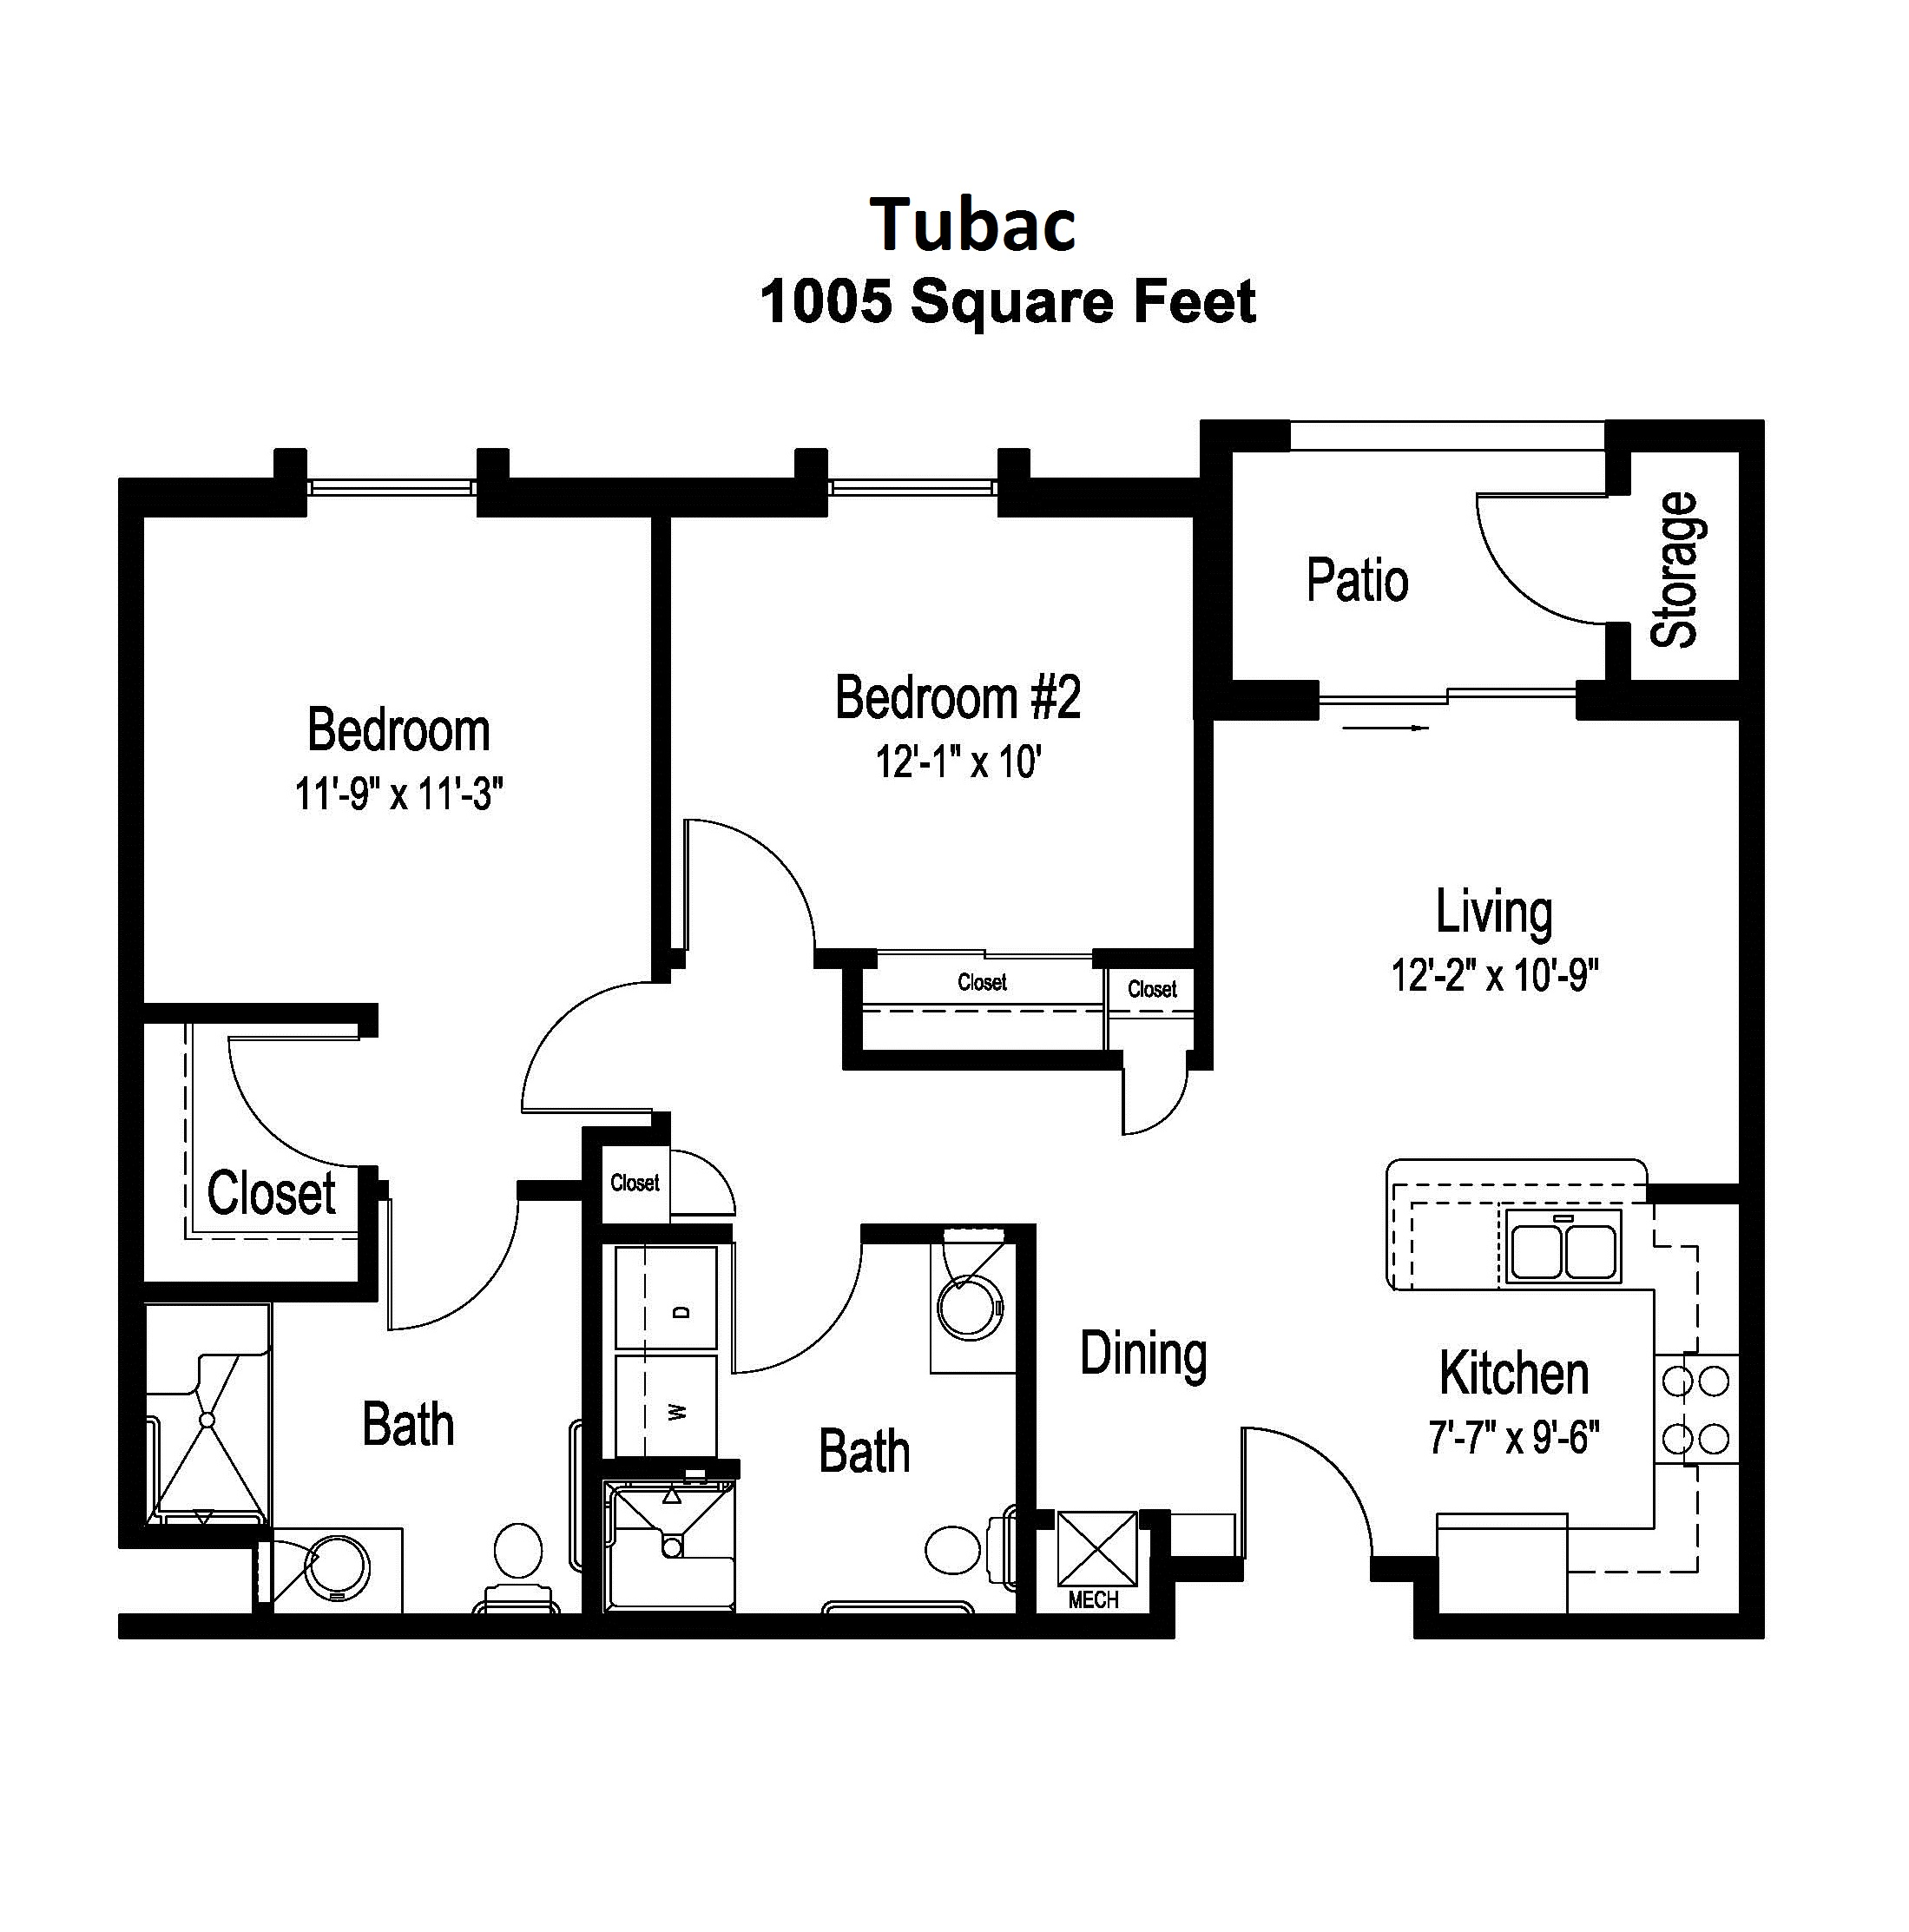 Tubac Independent Living floor plan for 2 bedroom/2 bathroom apartment for seniors